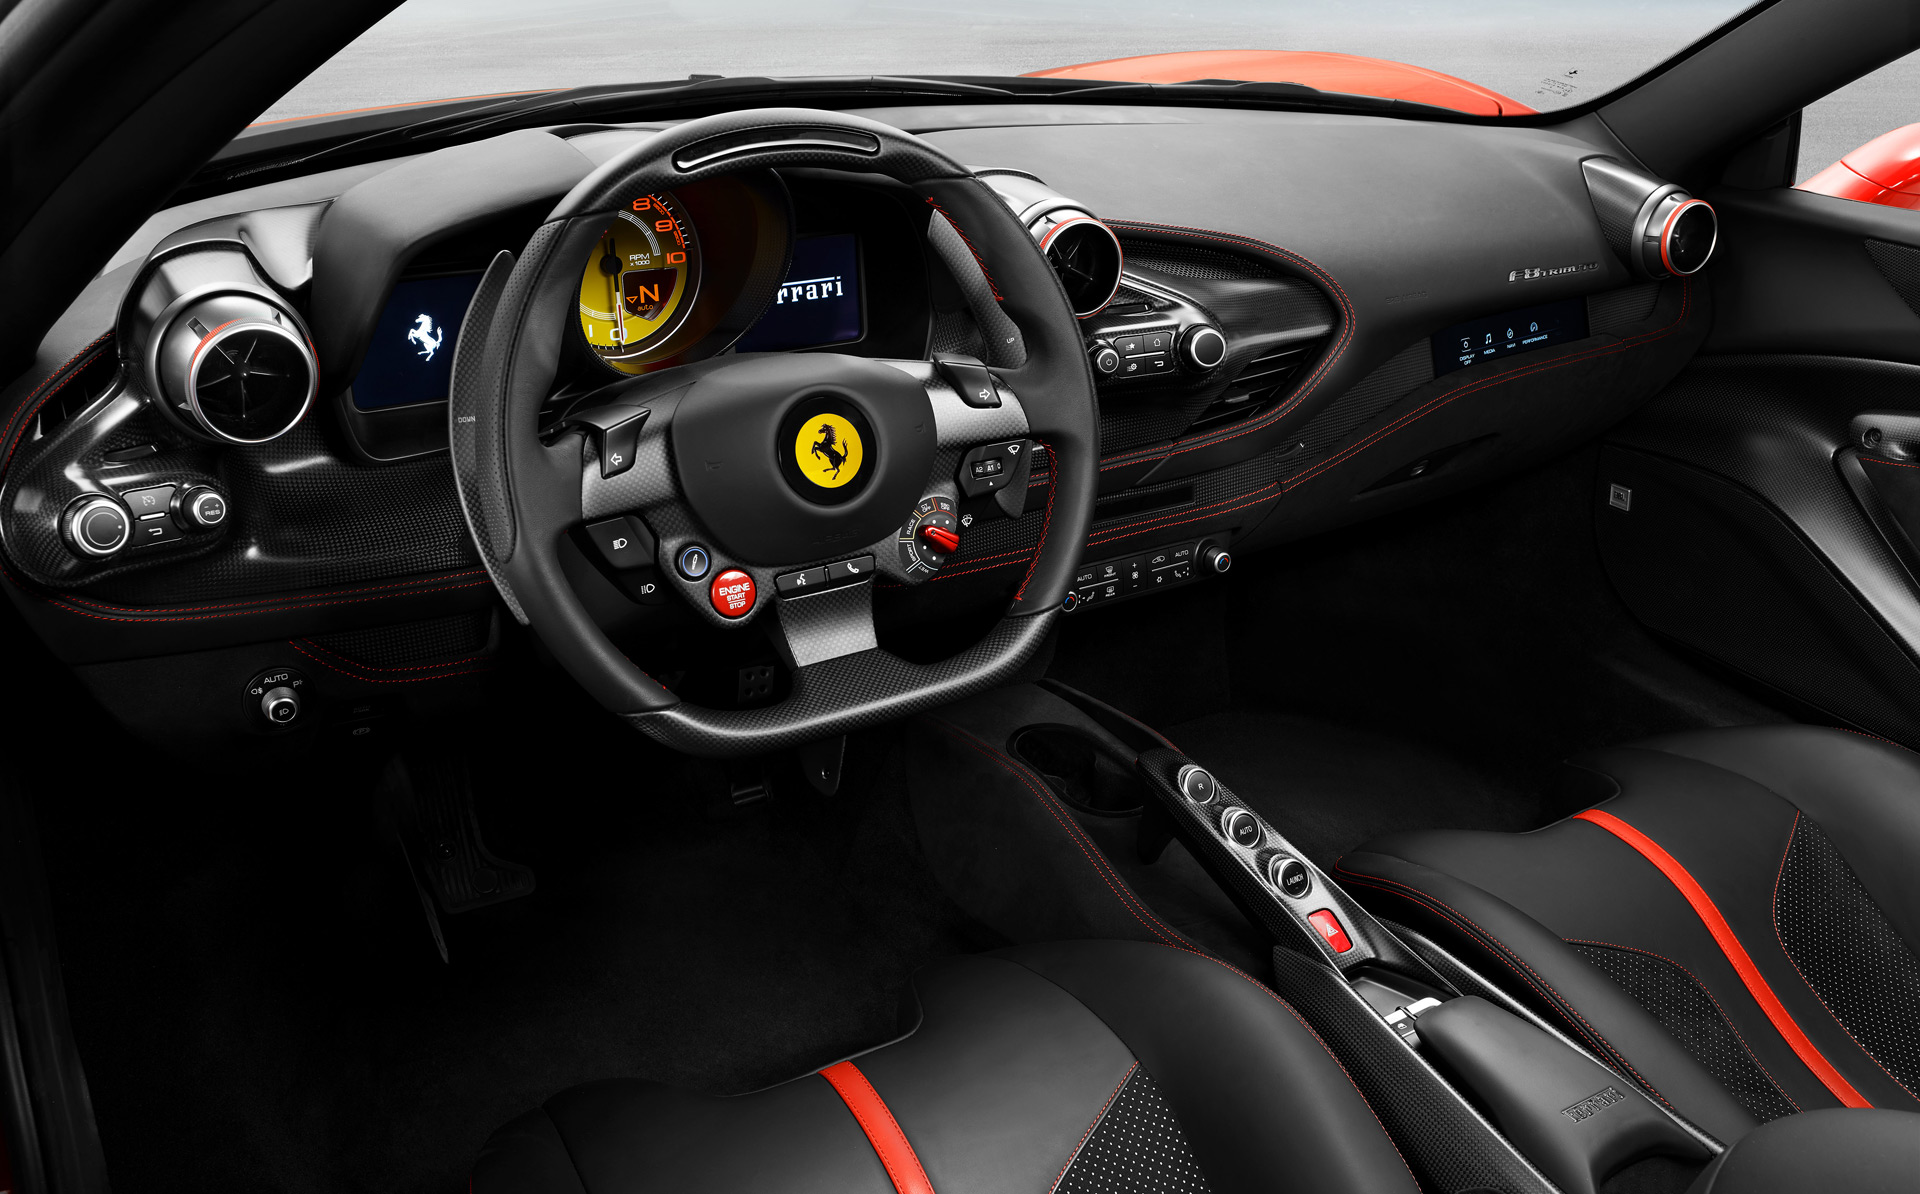 2020 Ferrari F8 Tributo Interior Wallpaper (6)